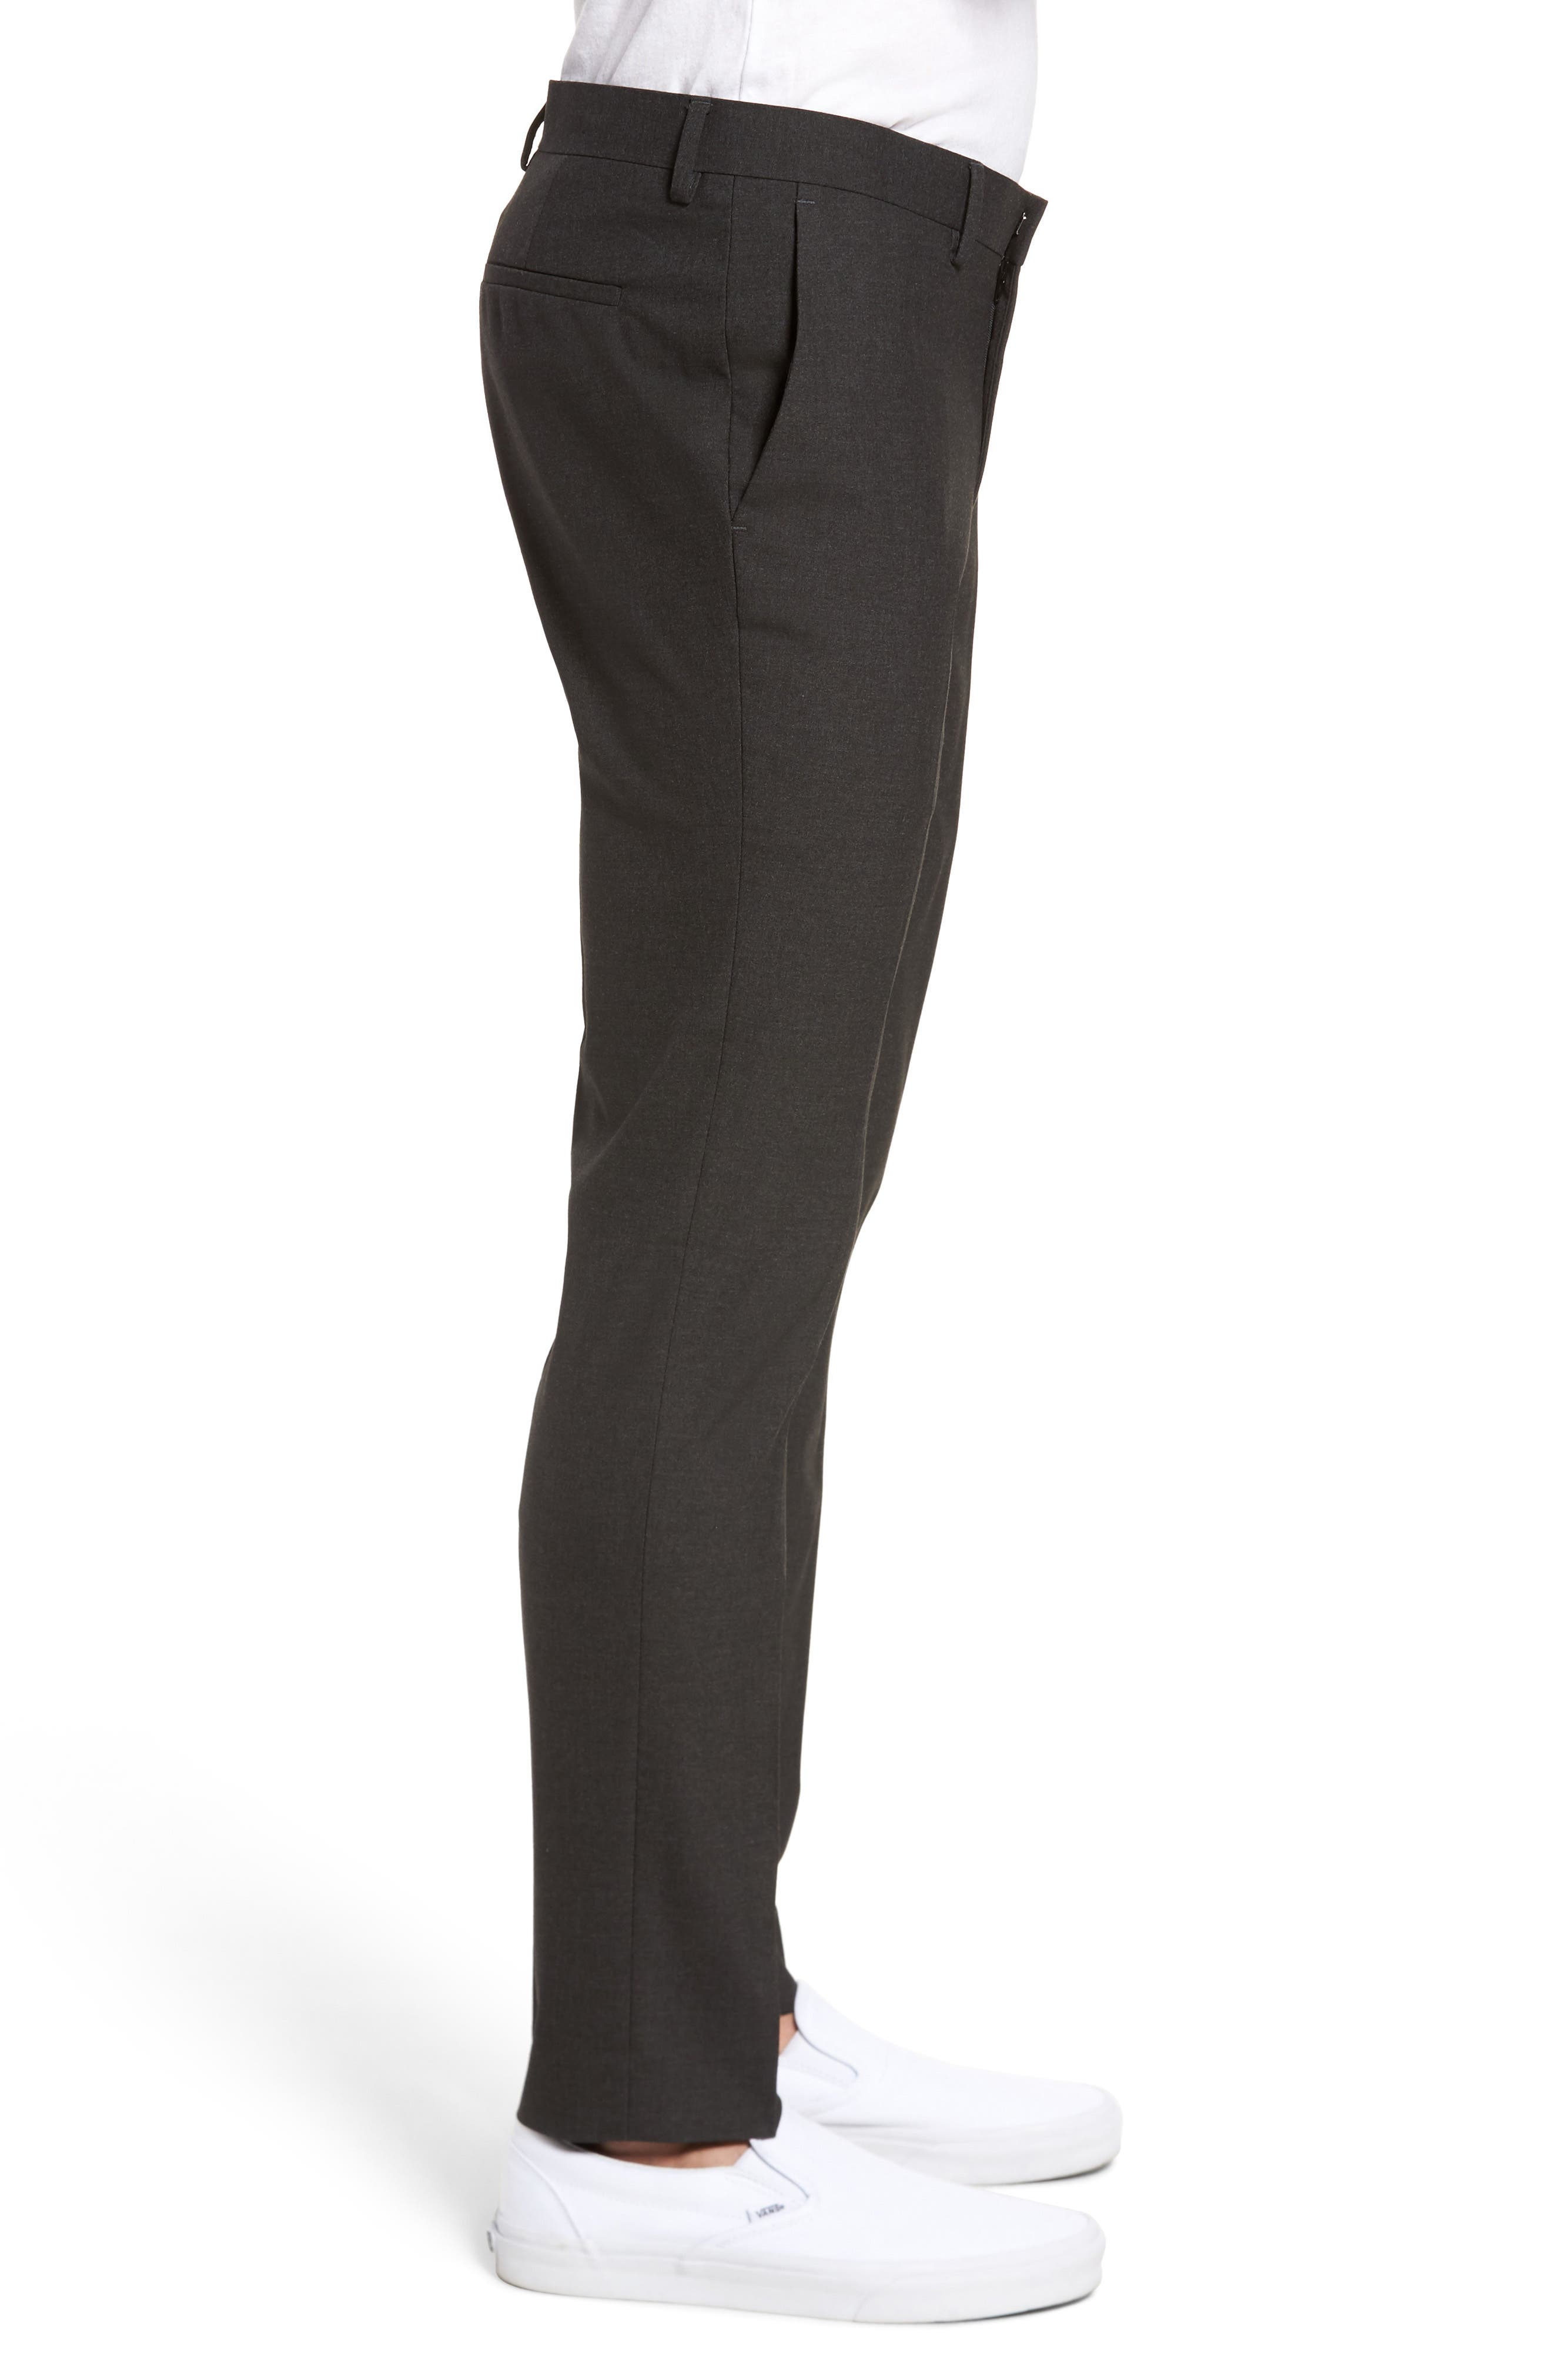 Black Skinny Fit Trousers,                             Alternate thumbnail 3, color,                             Charcoal